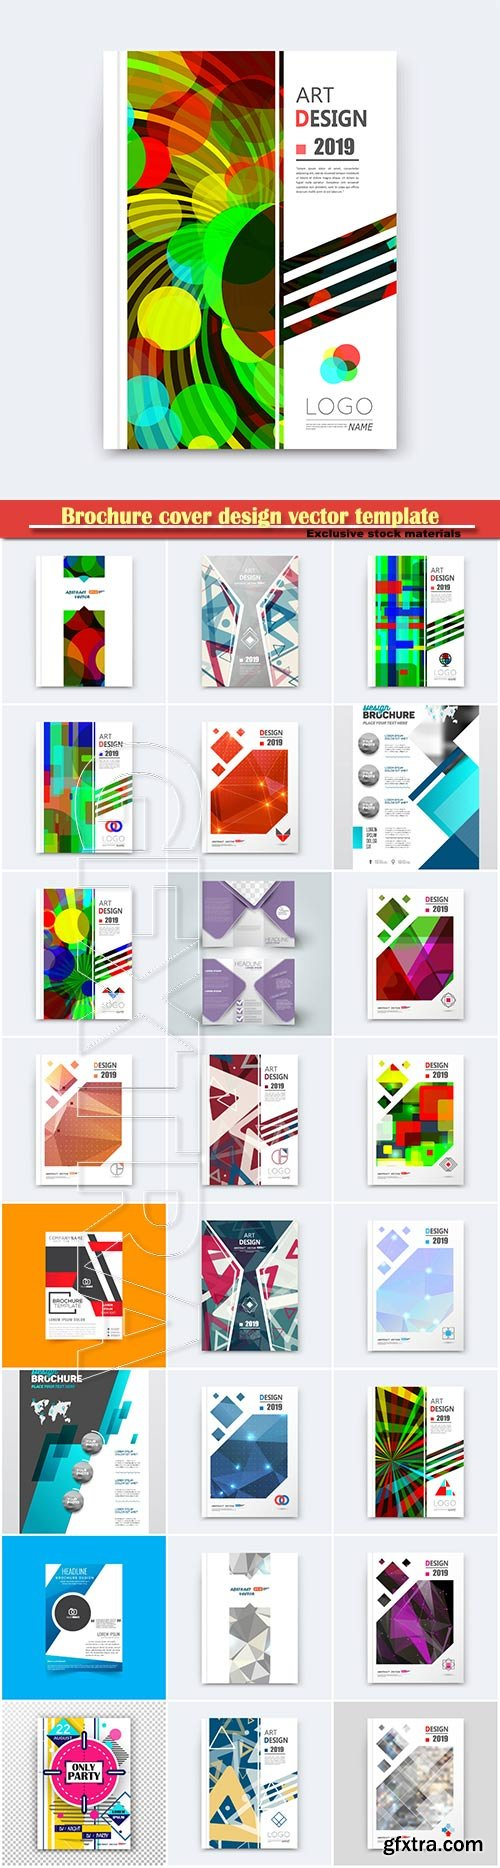 Brochure cover design vector template # 15